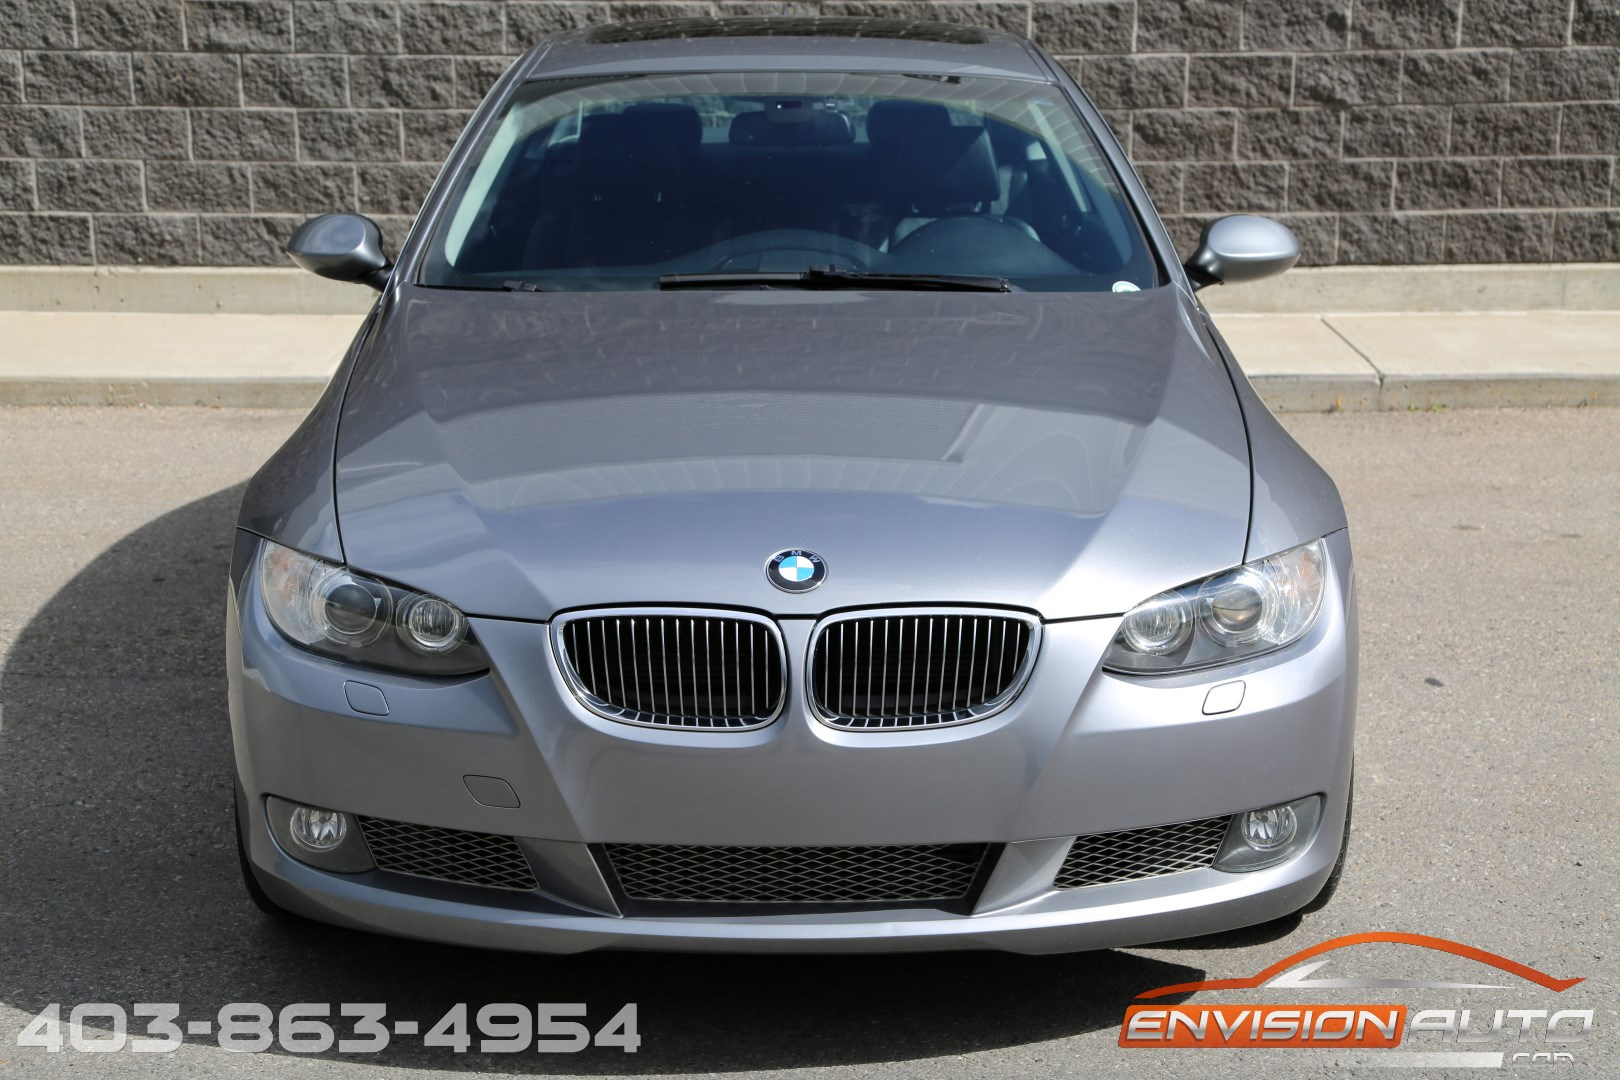 2009 bmw 335i xdrive coupe warranty service history envision auto calgary highline. Black Bedroom Furniture Sets. Home Design Ideas